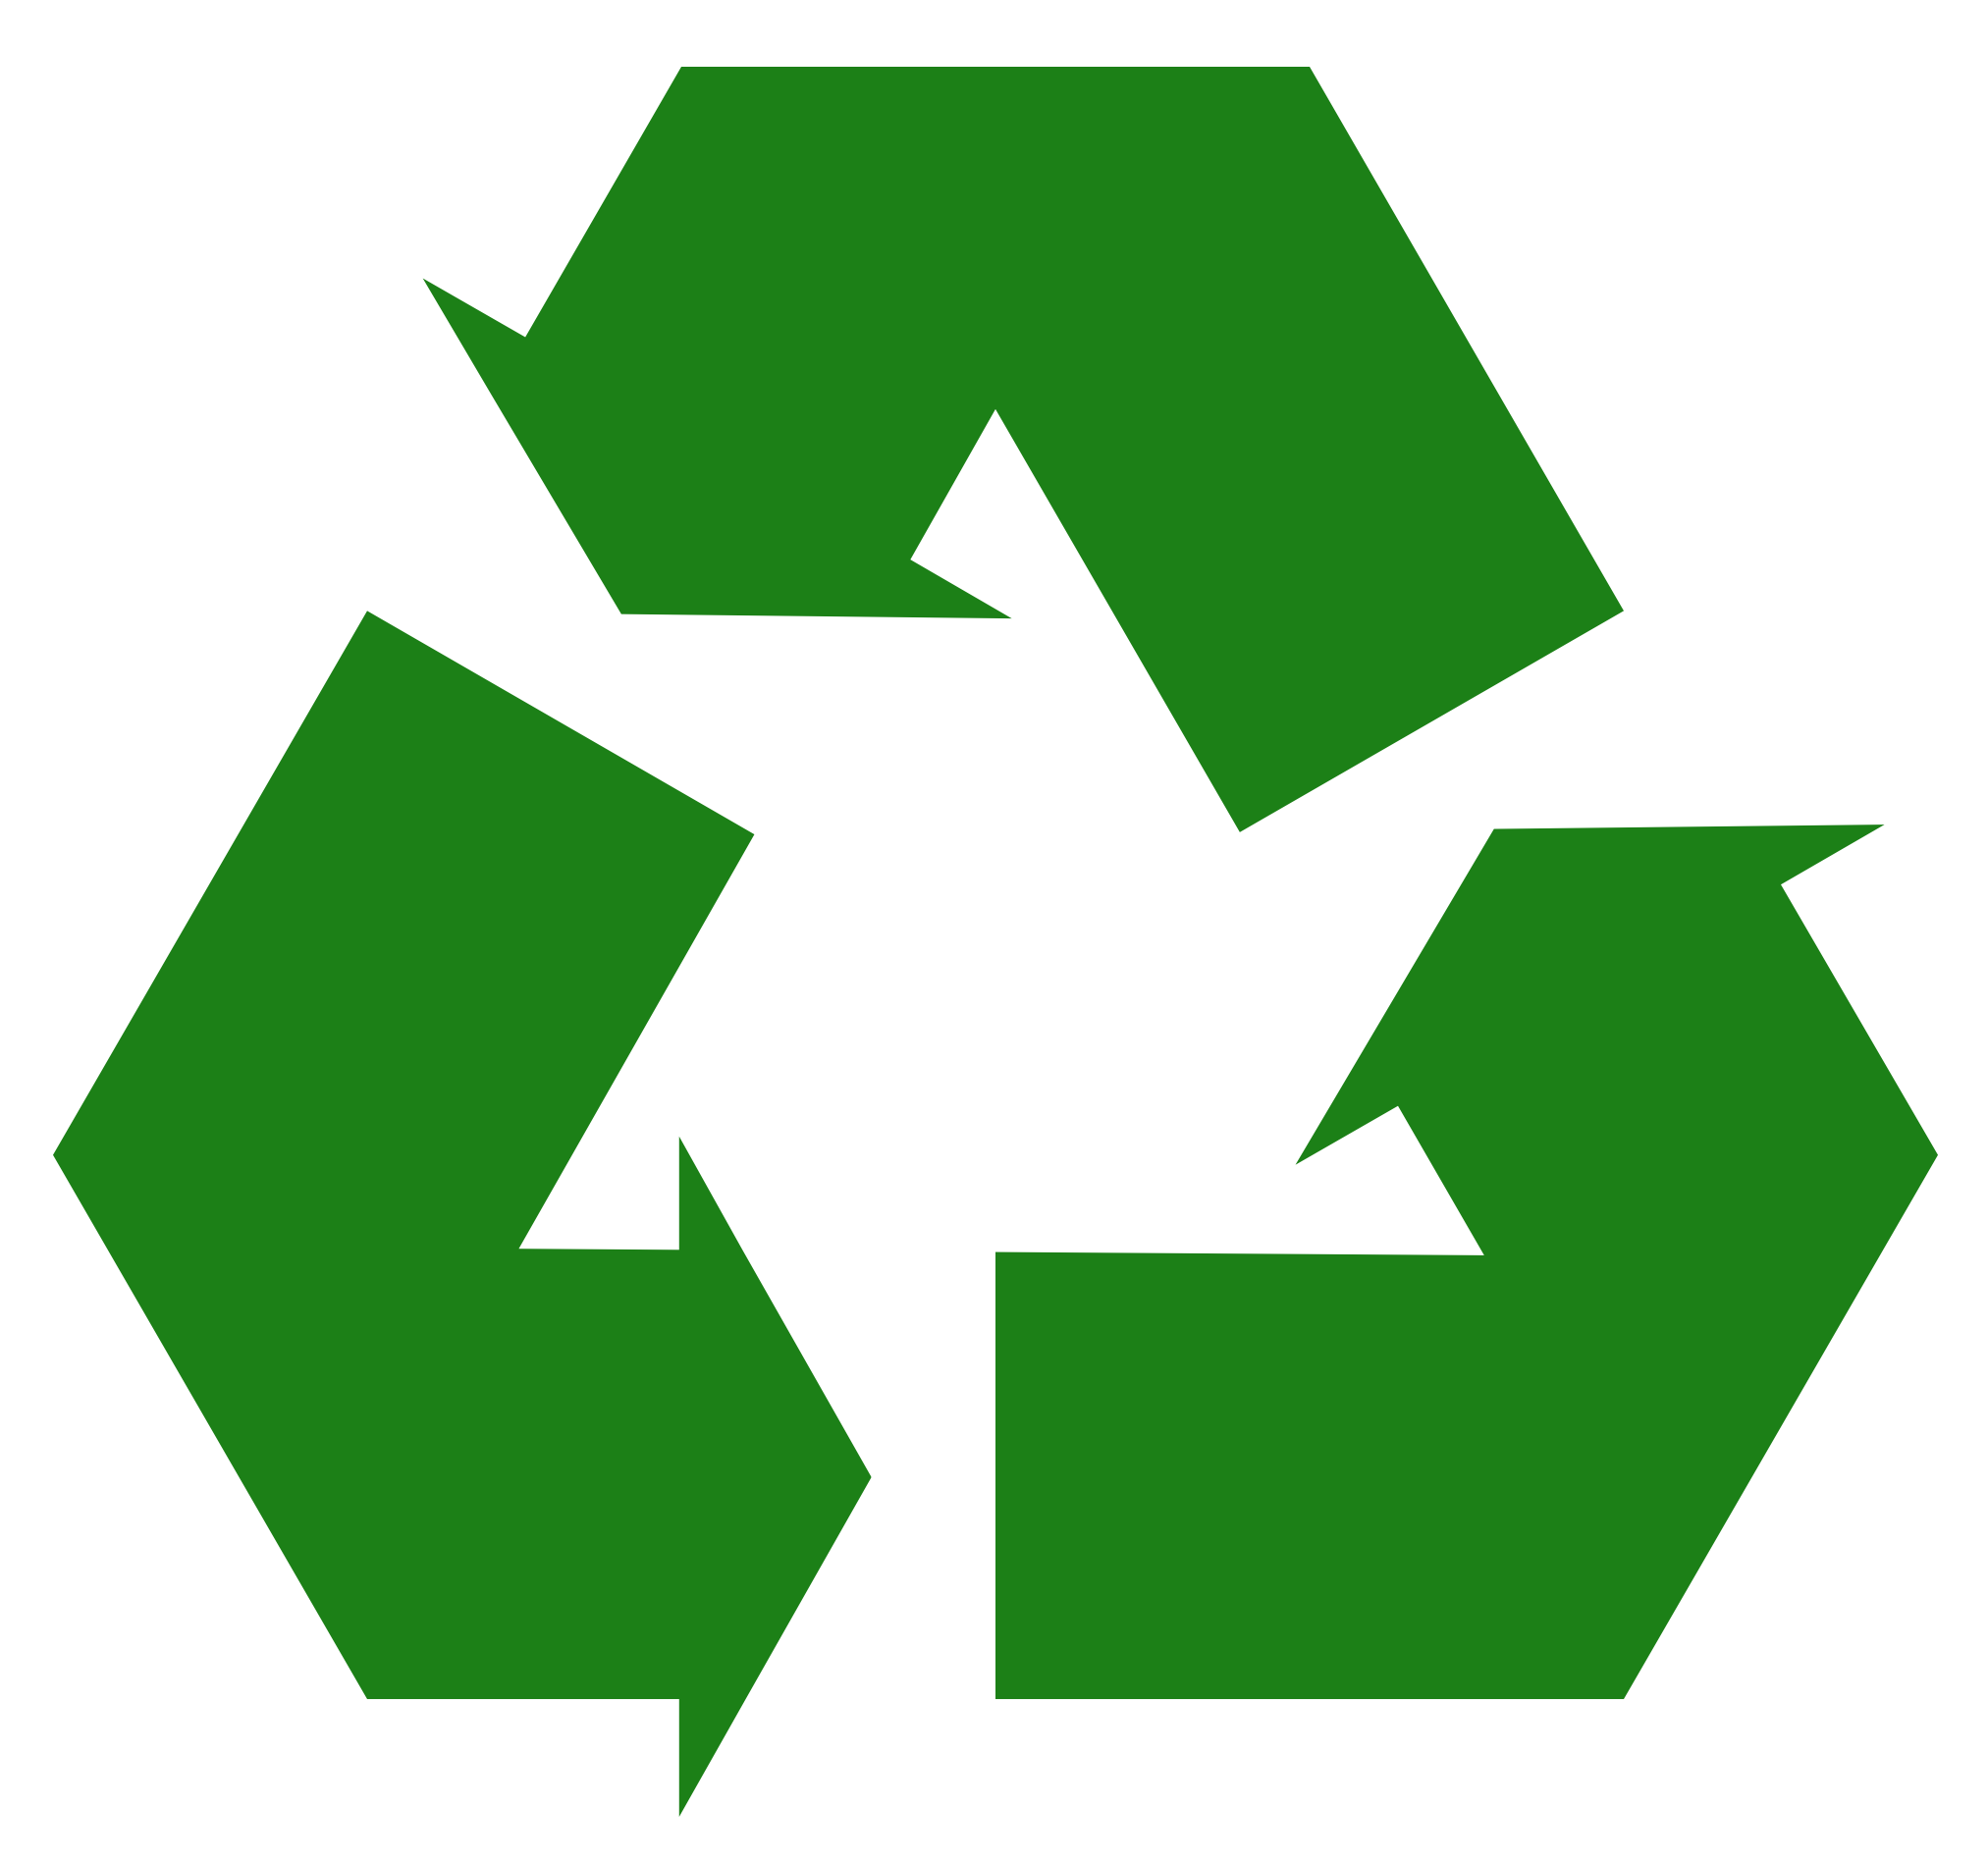 Paper Recycle Symbol Recycling Free Frame PNG Image